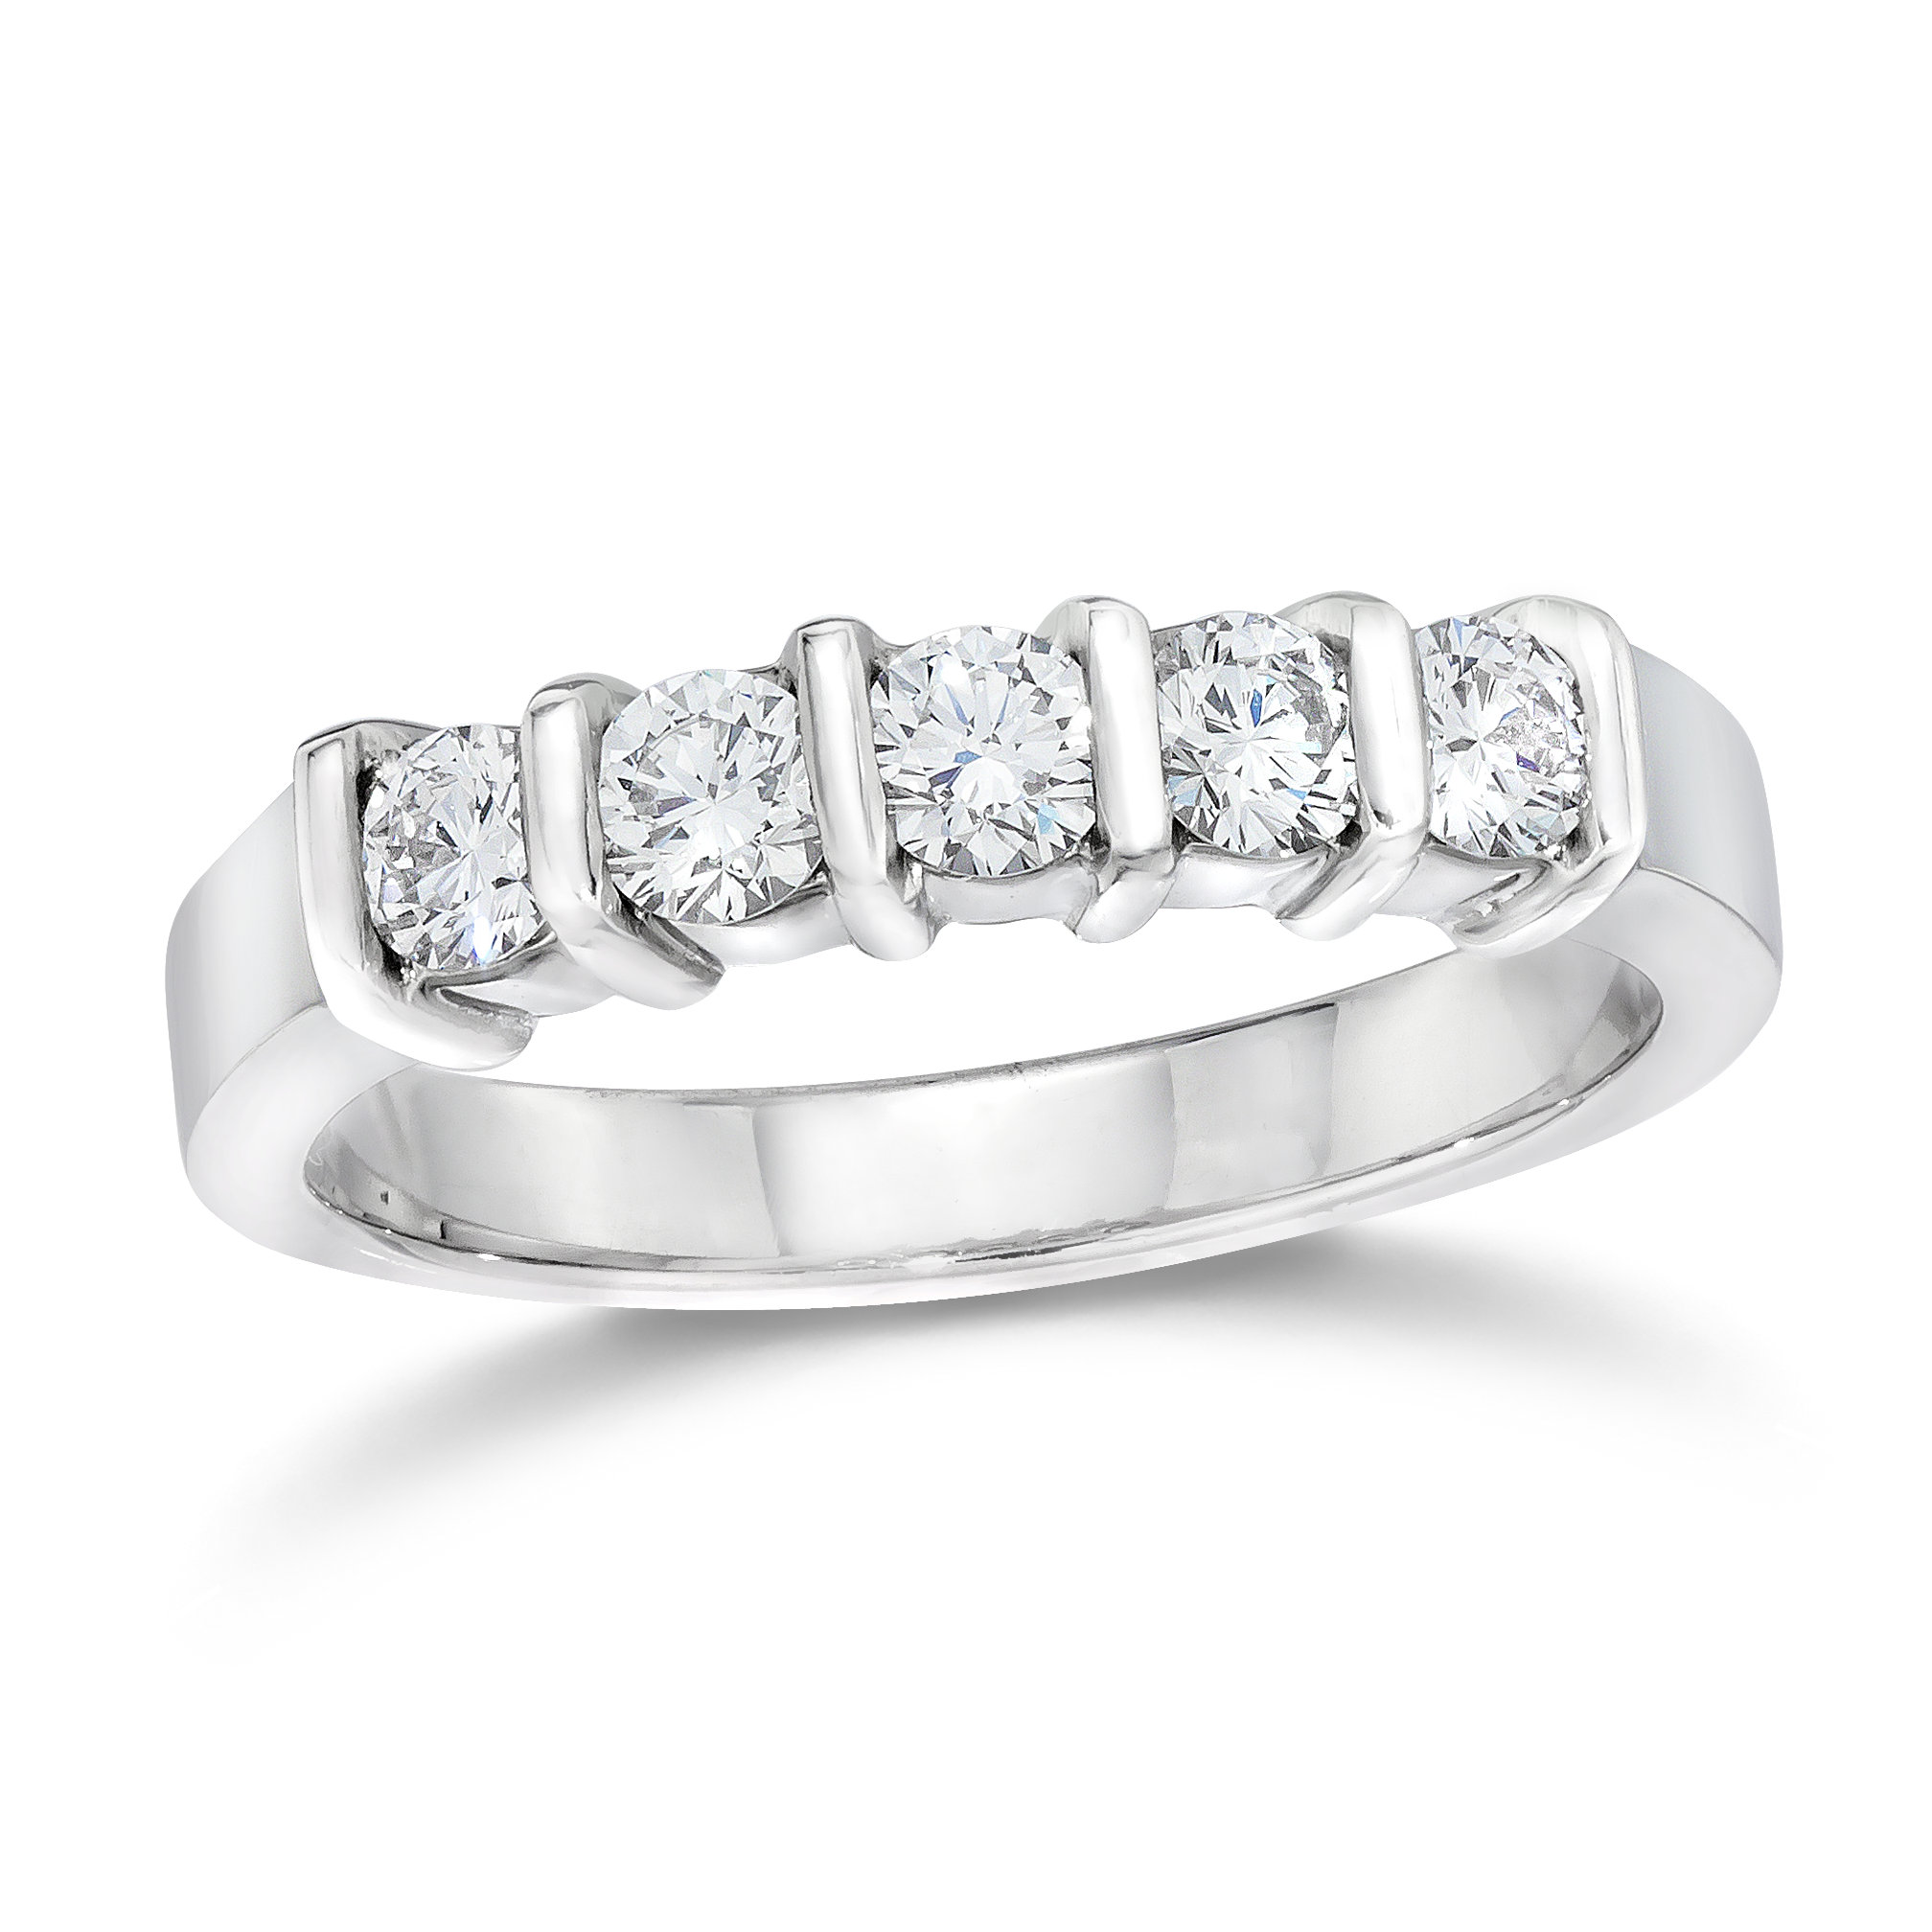 5 stone Wedding Ring In Platinum - http://www.gemplatinum.com/collections/gem-platinum/wedding-rings/gem-platinum-round-cut-diamond-5-stone-wedding-band-554.htmlSee more at: http://www.gemplatinum.com/collections/gem-platinum/wedding-rings/gem-platinum-round-cut-diamond-5-stone-wedding-band-554.html